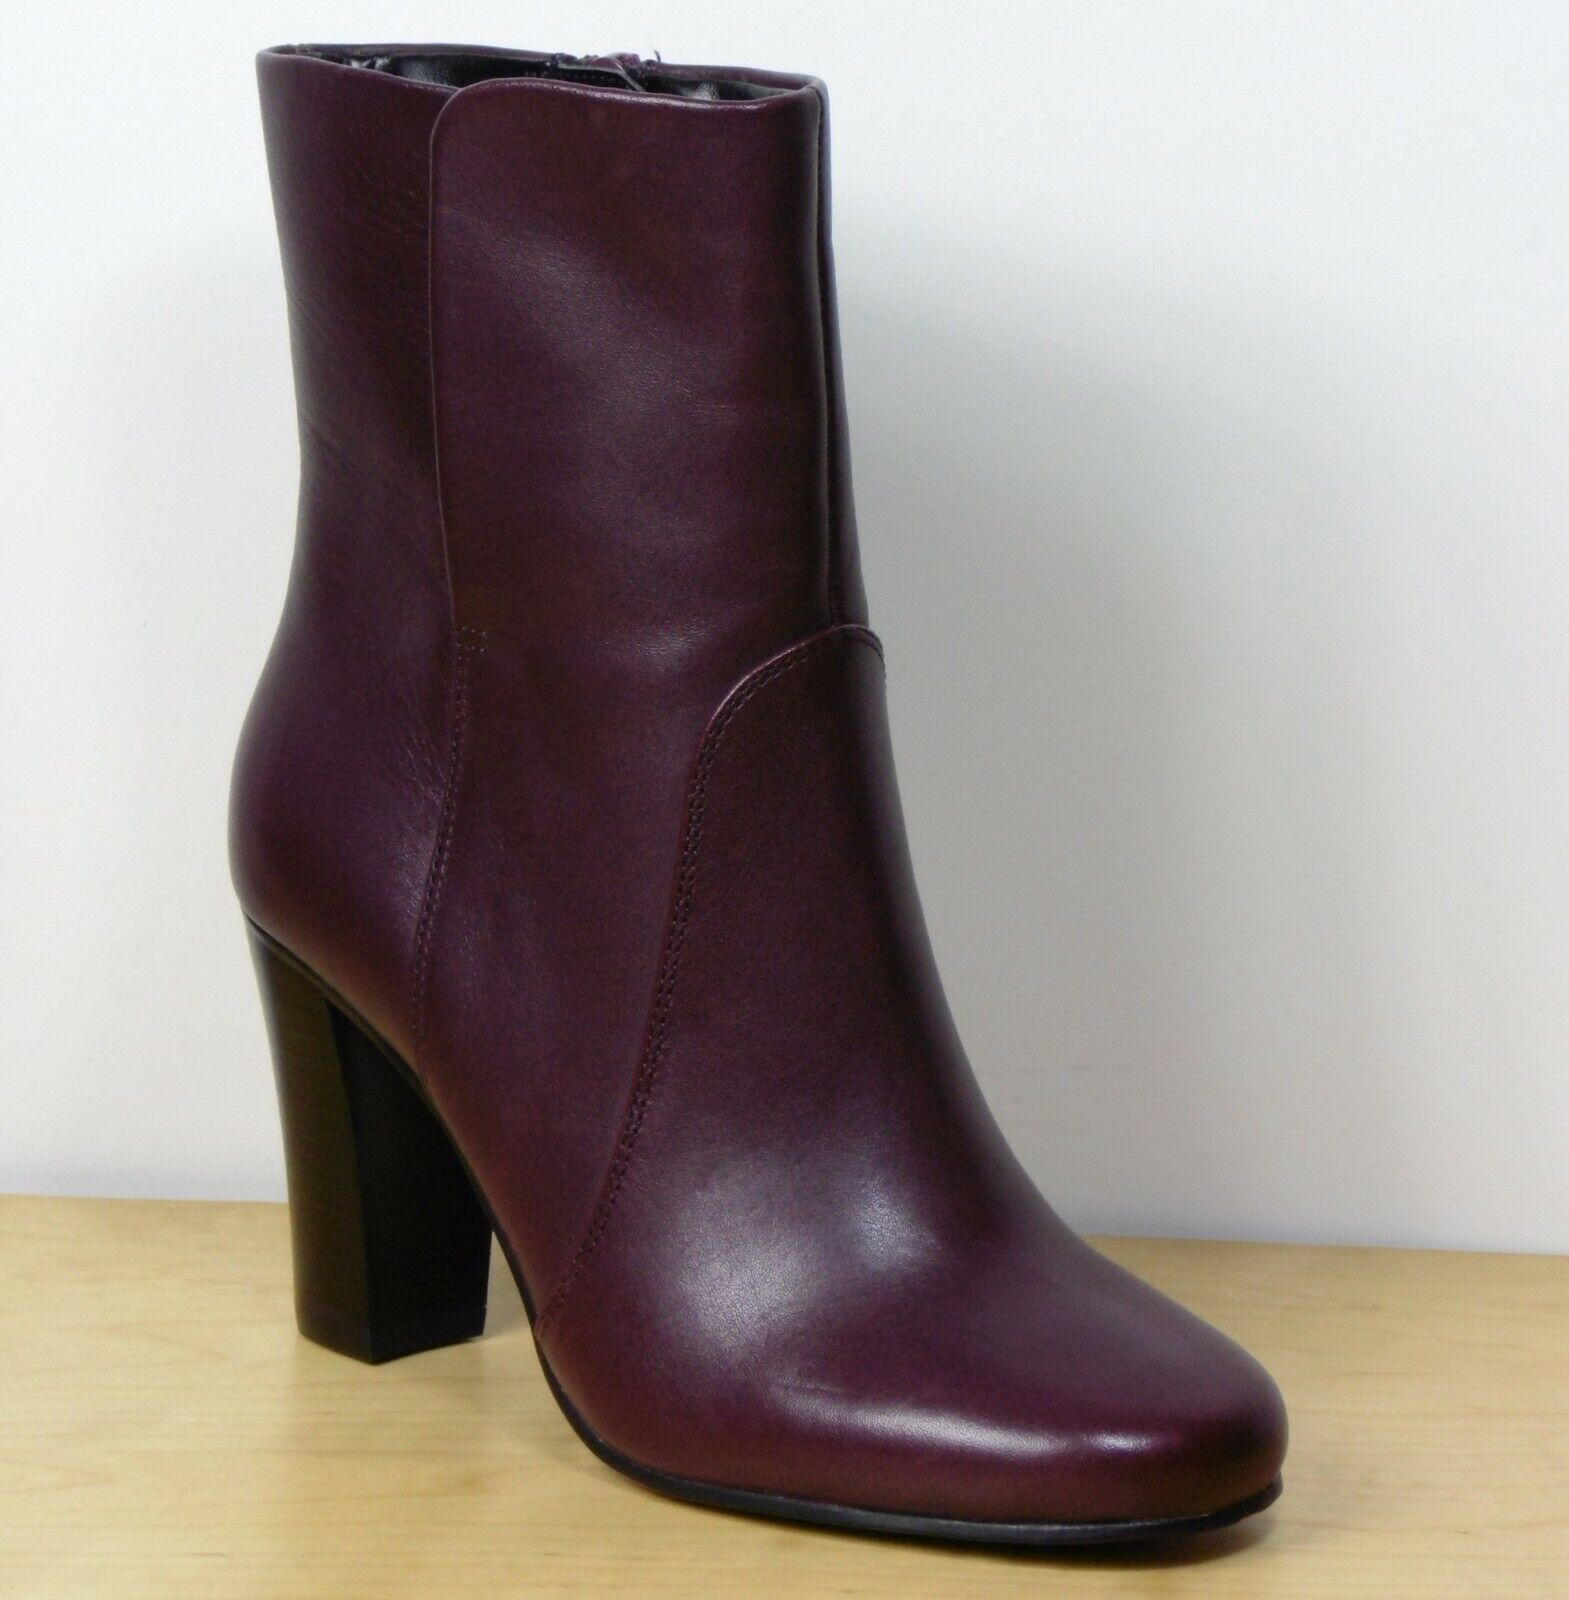 M&S AUTOGRAPH Real LEATHER High Heel ANKLE BOOTS  Size 3  OX BLOOD